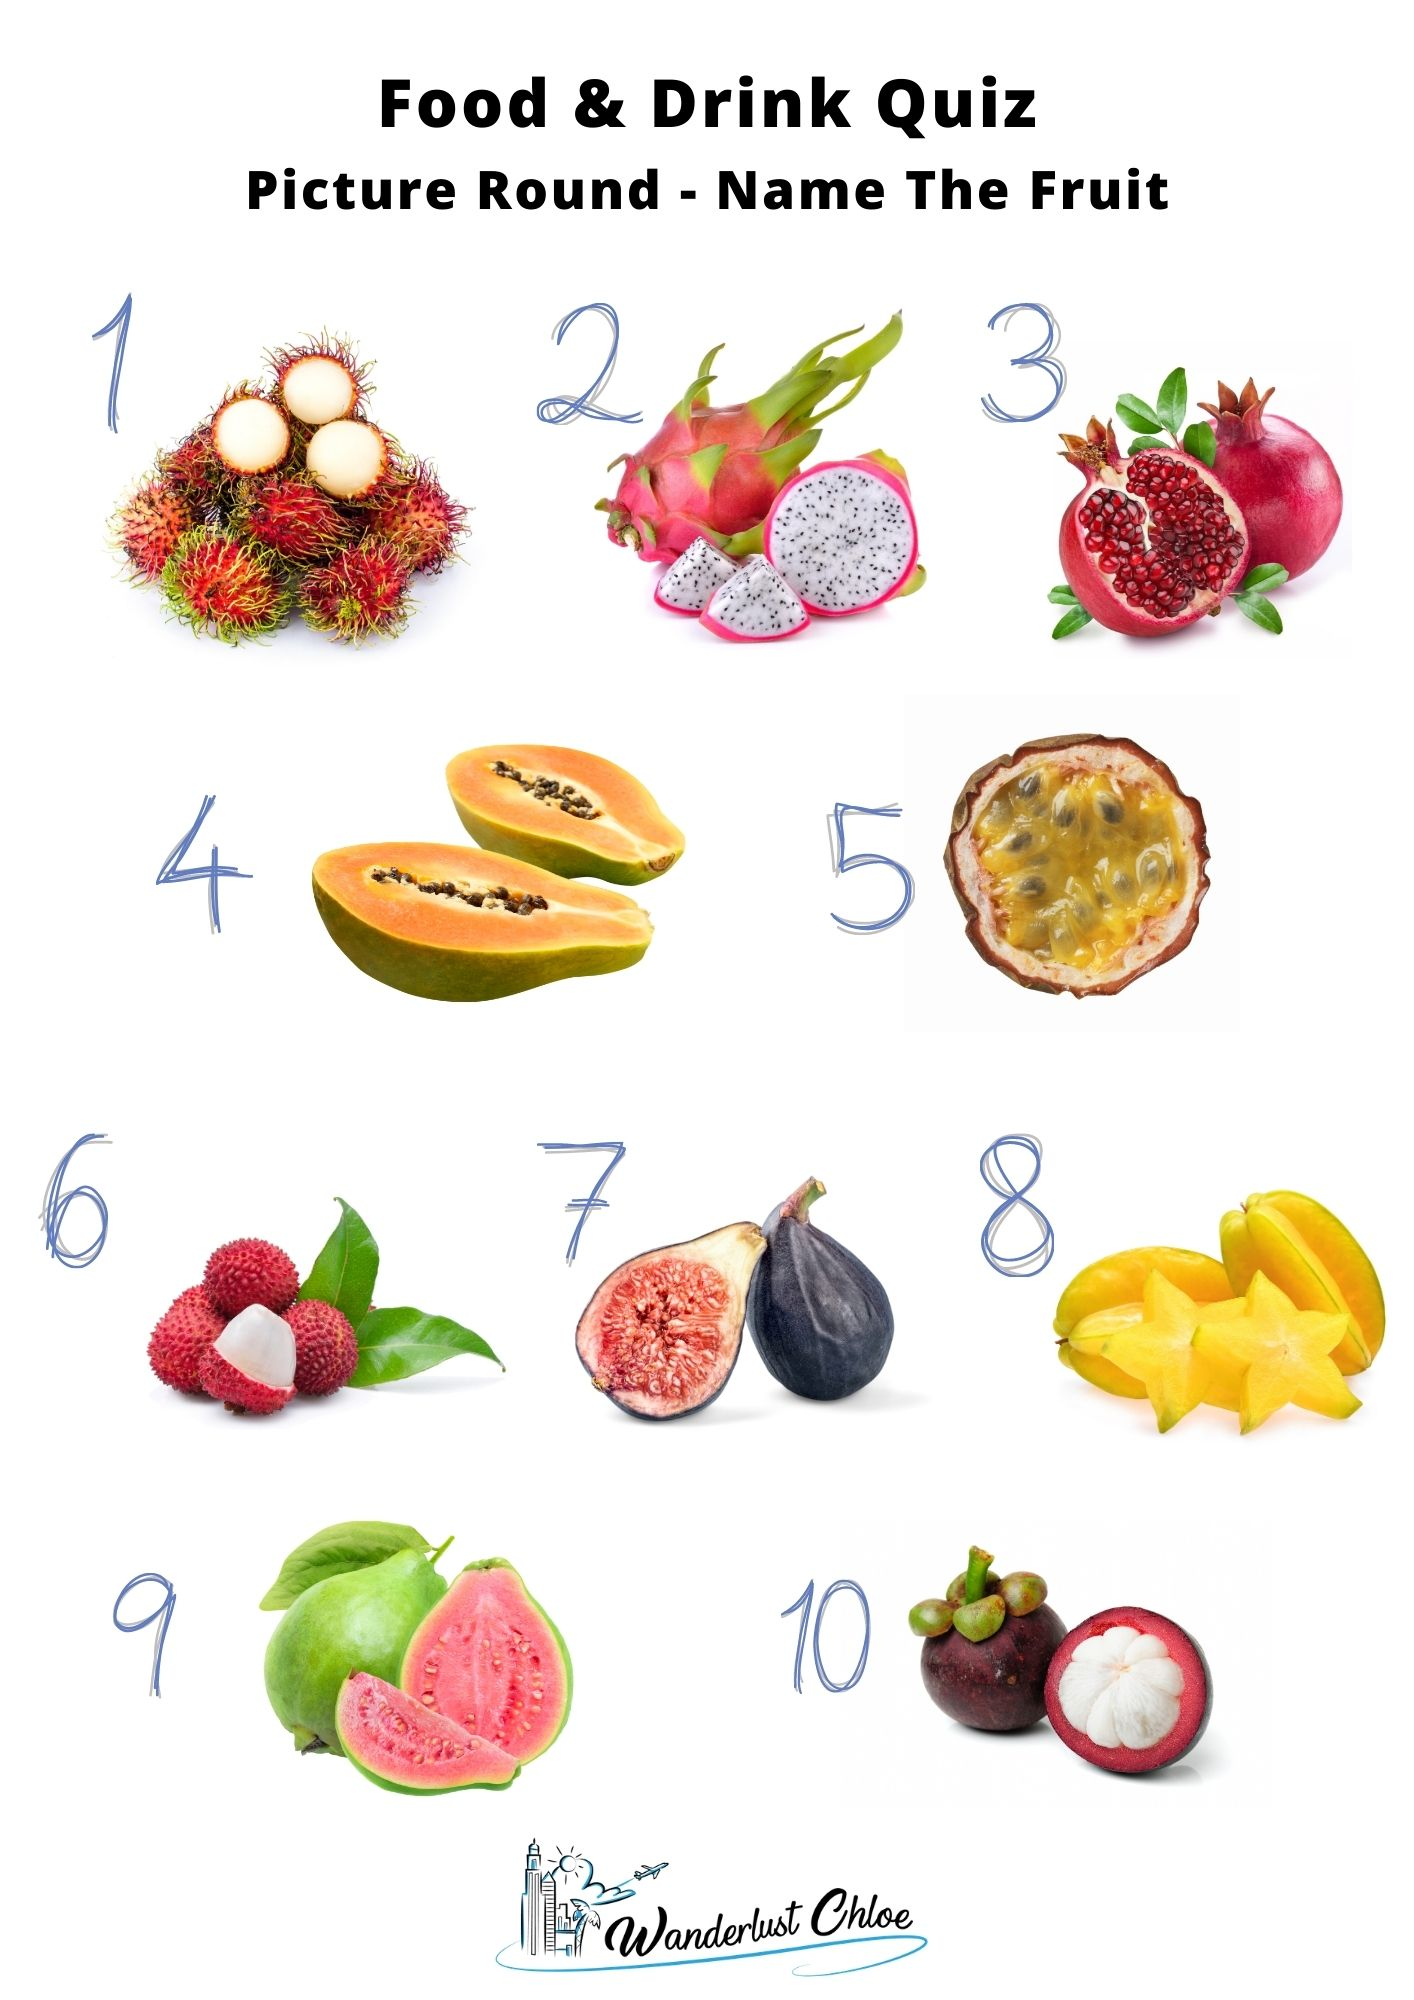 Food & Drink Quiz - Name The Fruit